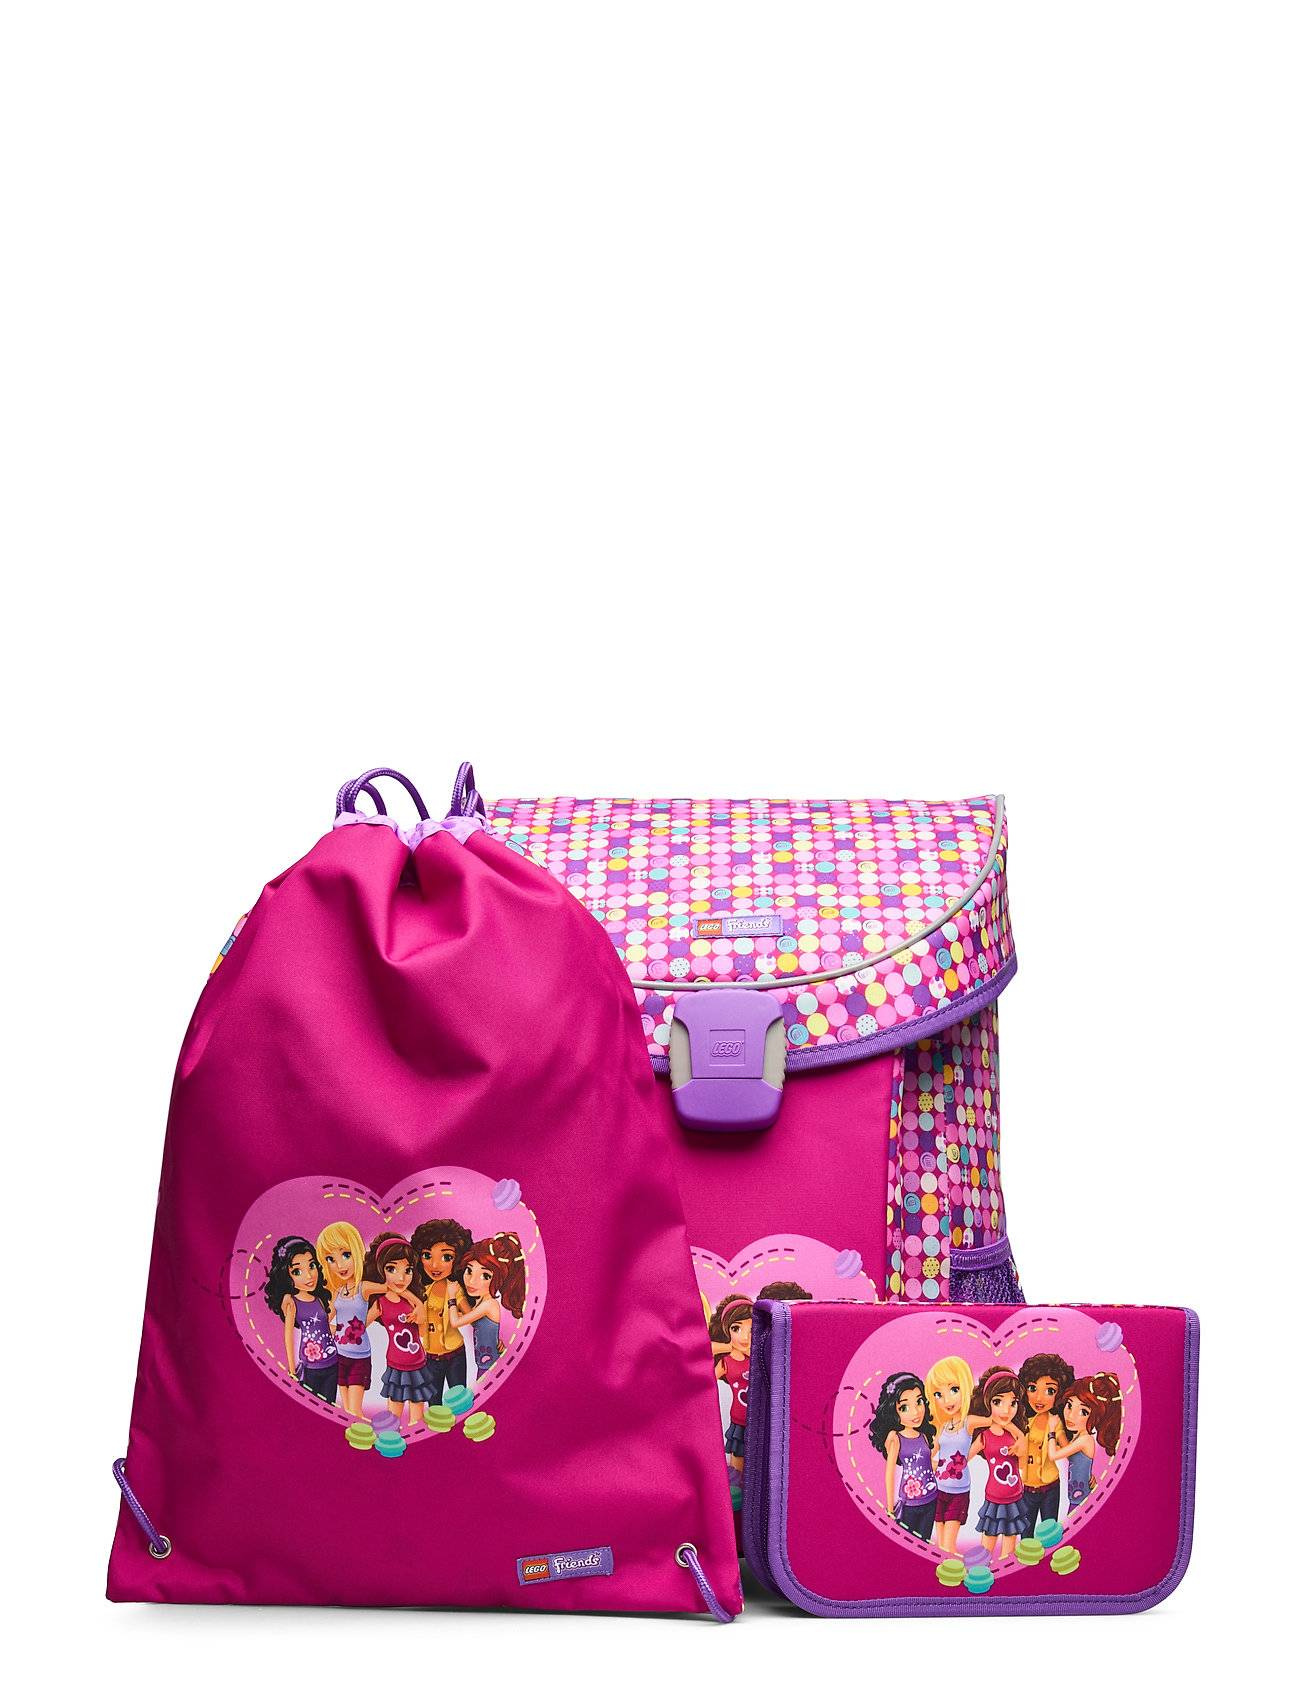 Lego Easy School Bag Set Accessories Bags Backpacks Rosa Lego Bags